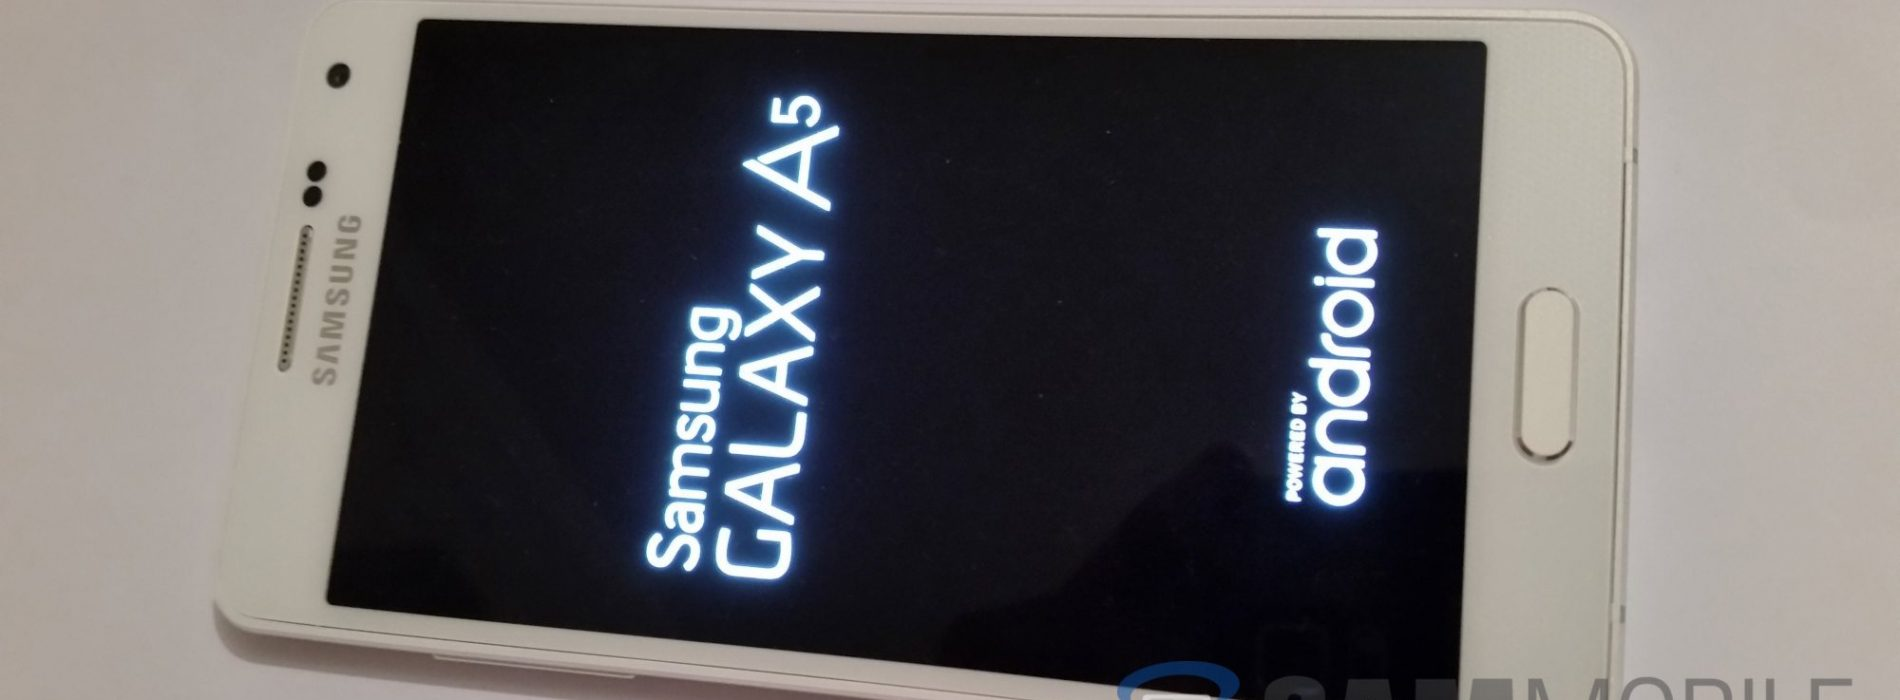 [LEAKED] Samsung Galaxy A5: Hardware specifications